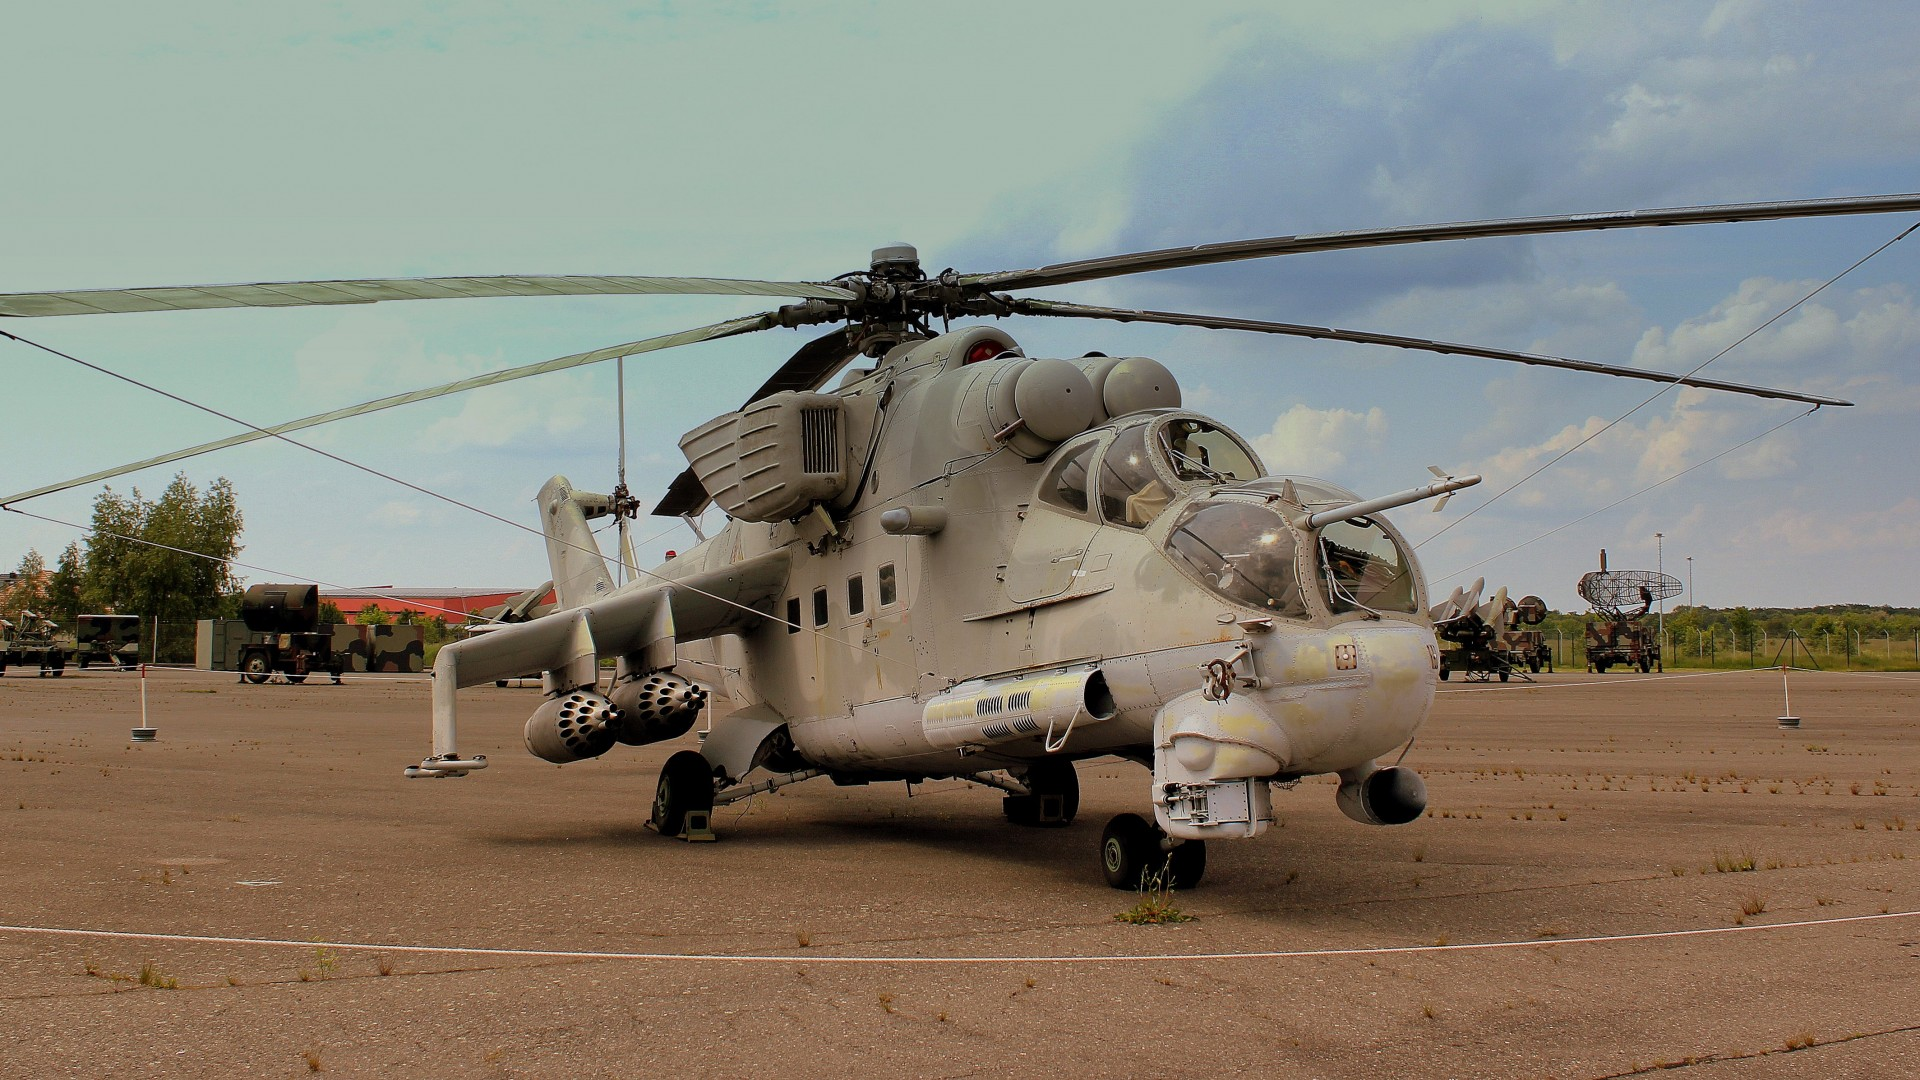 Mi-24, Mil, Hind, attack helicopter, Crocodile, flying tank, Russian Air Force (horizontal)